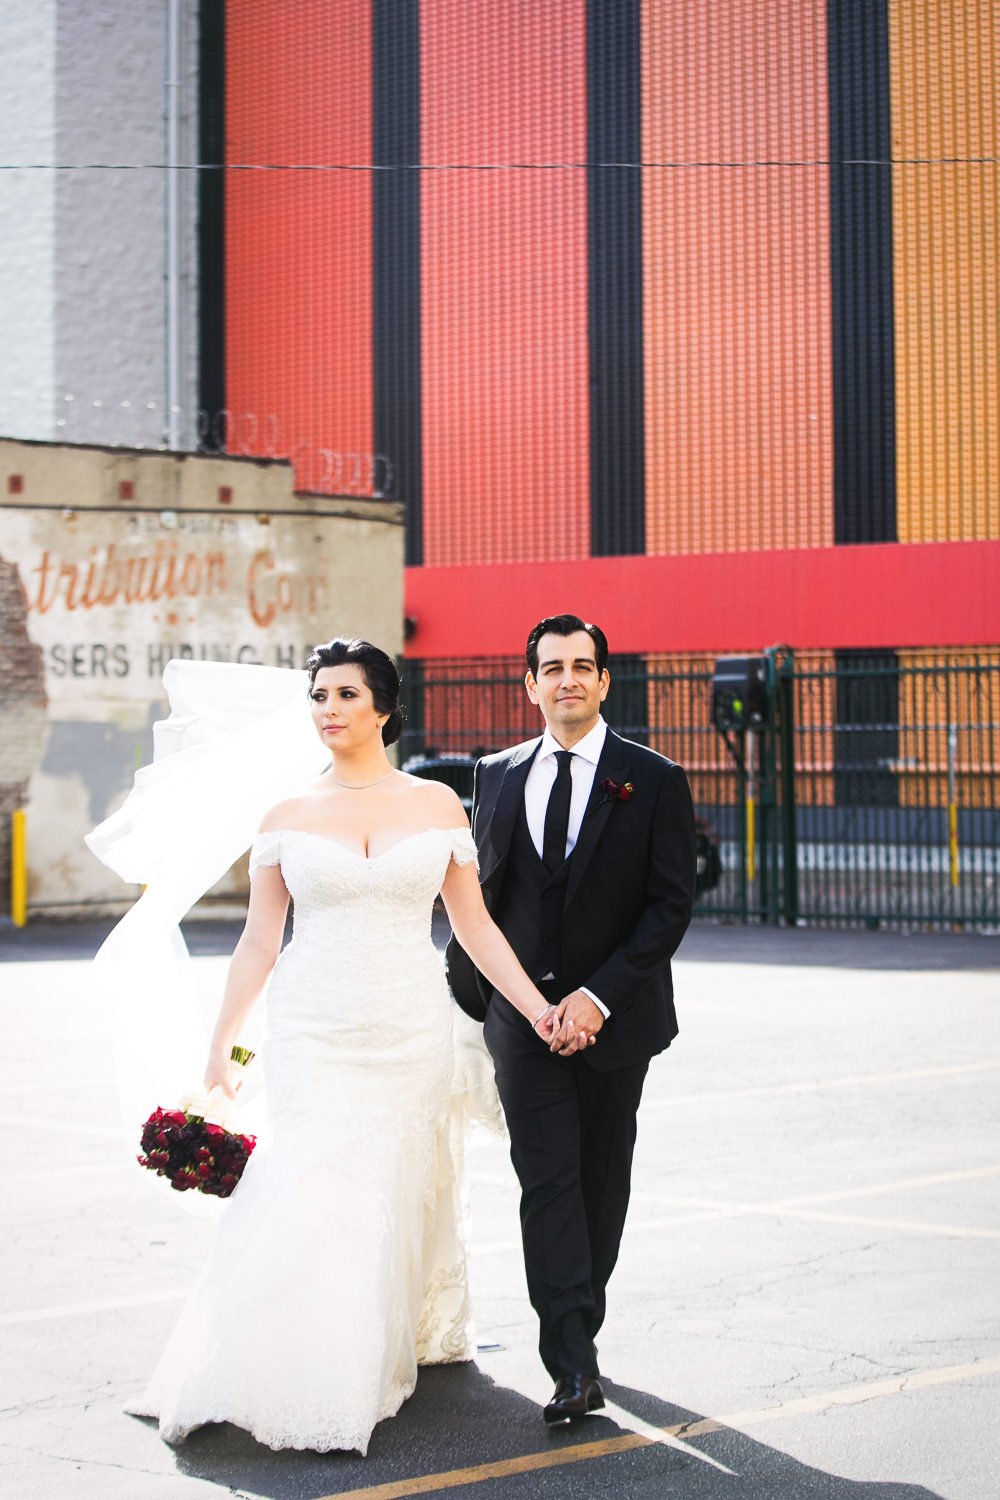 Beautiful Vibiana Wedding Photographs of Bride and Groom